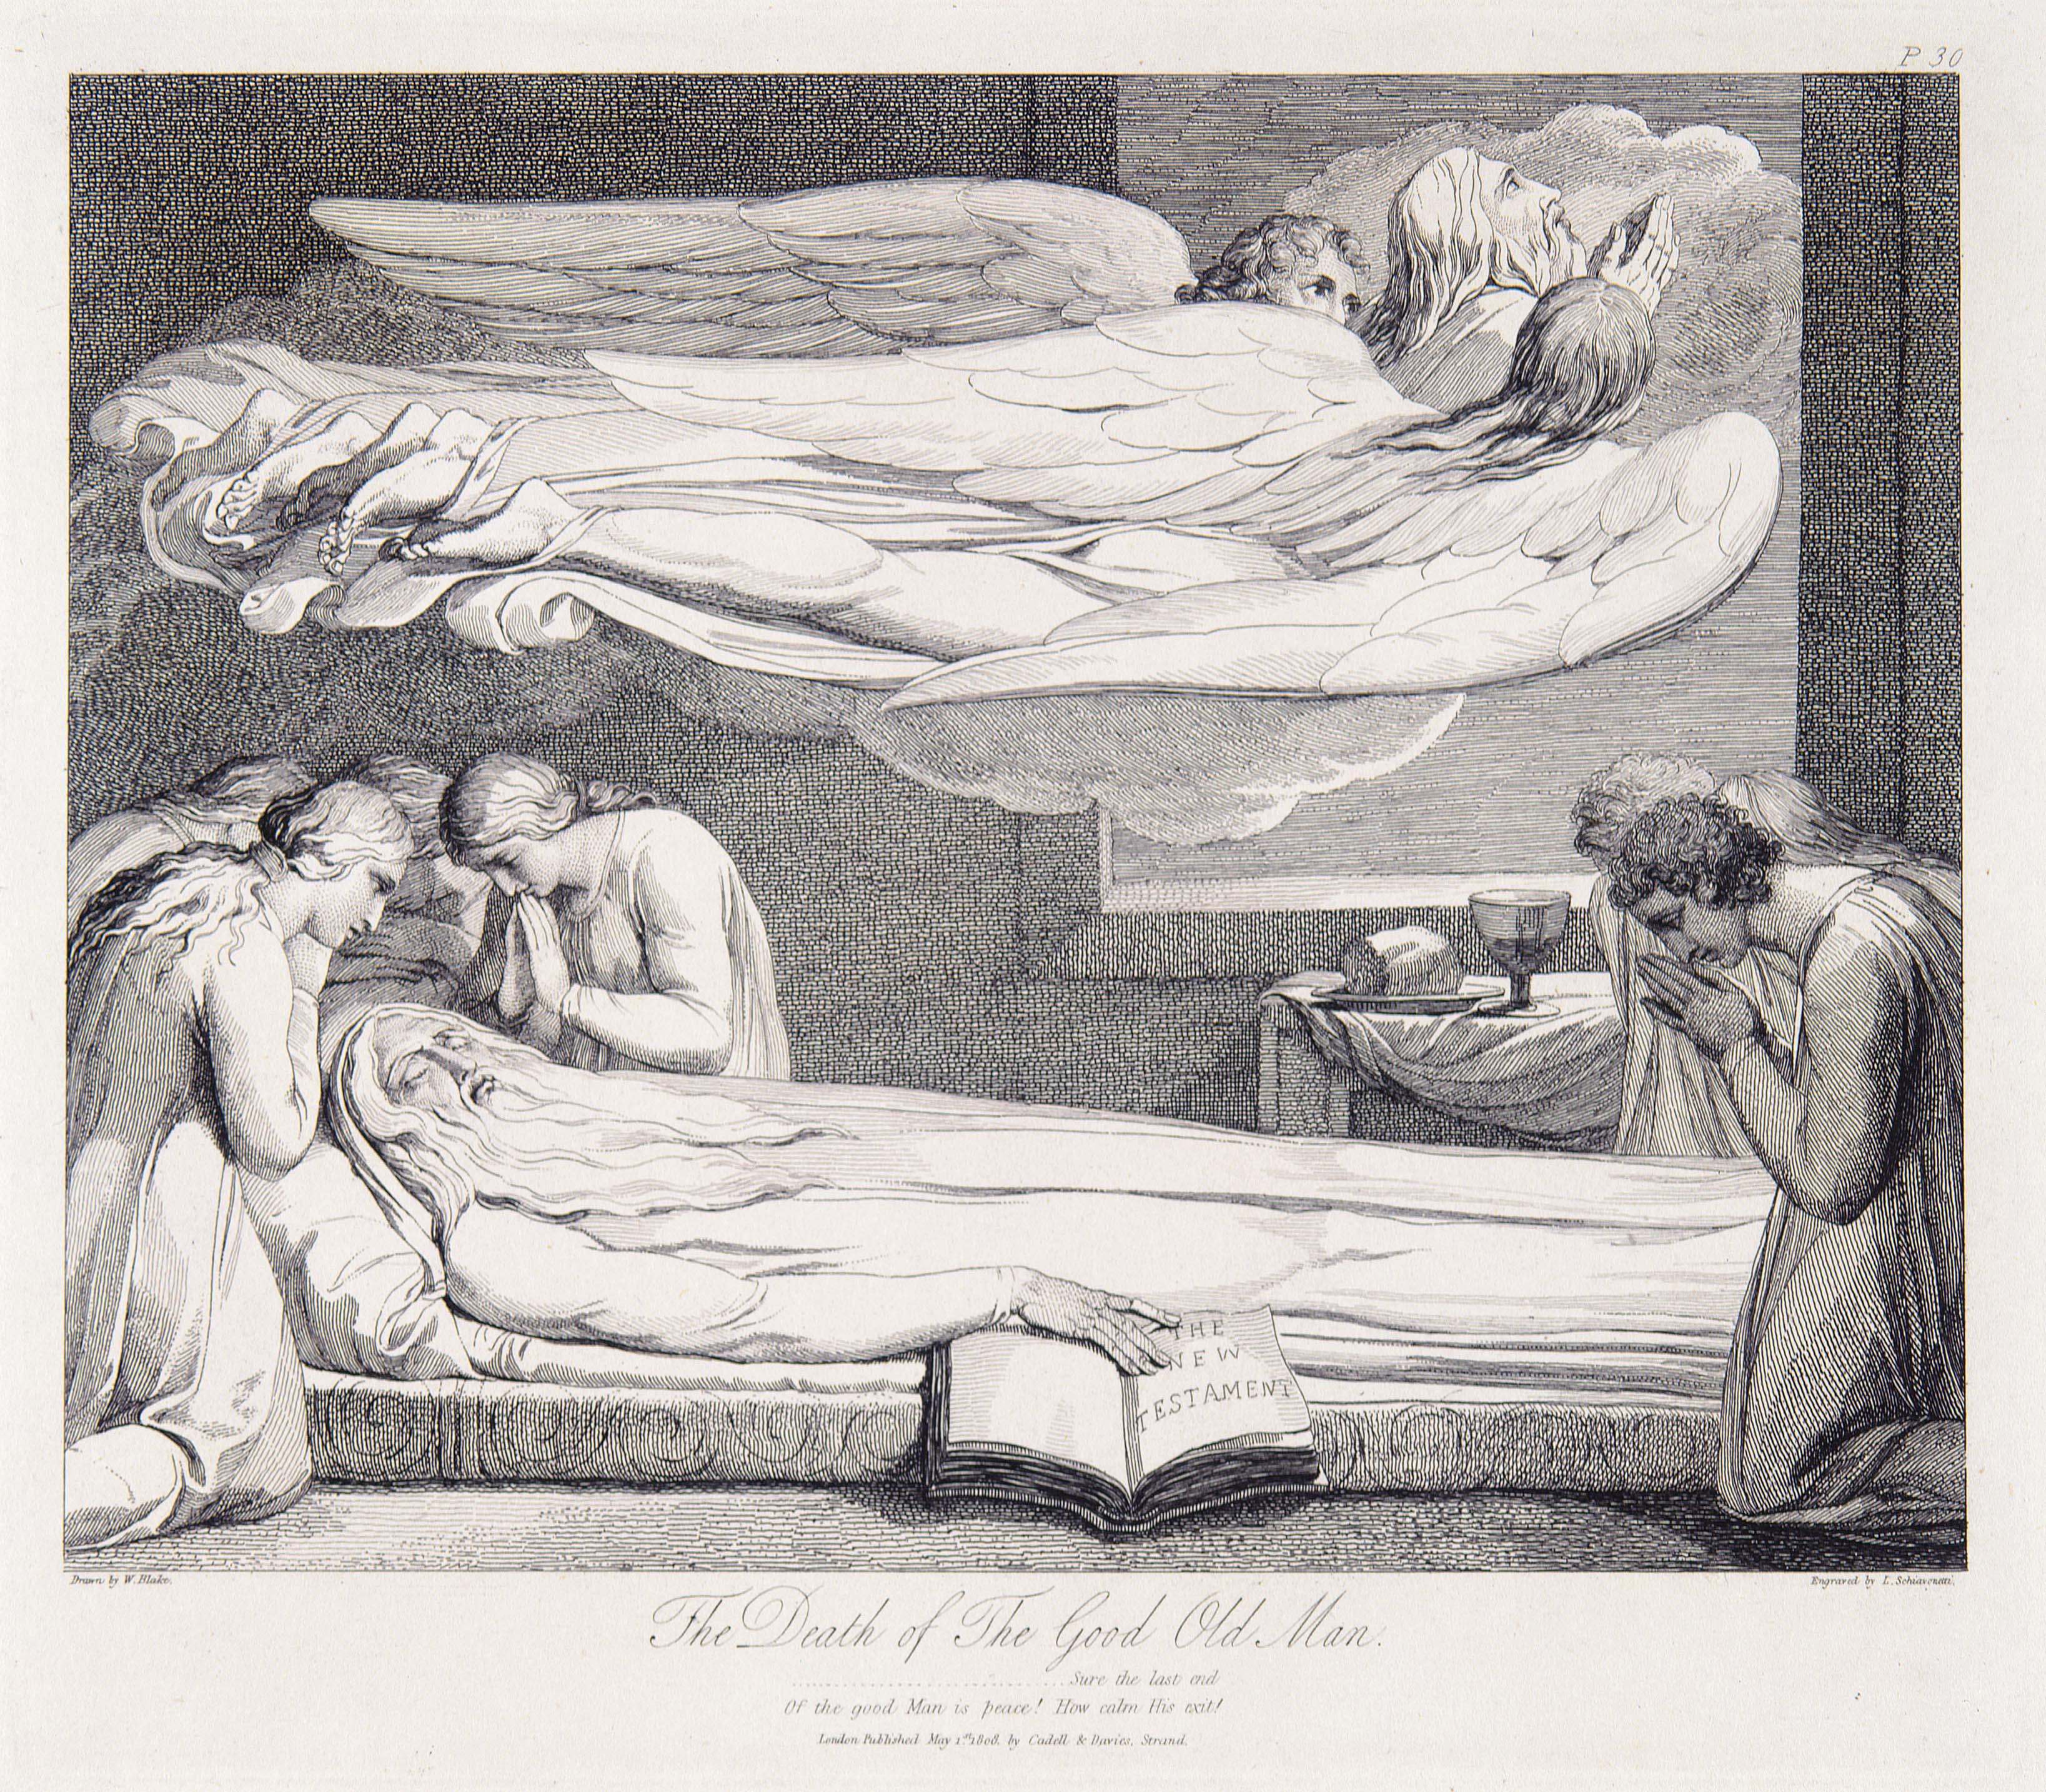 THE                 NEW                 TESTAMENT                 Drawn by W. Blake.                 Etched by L. Schiavonetti.                 The Death of The Good Old Man.                 ...............Sure the last end                 Of the good Man is peace!    How calm His exit!                 London Published May 1st. 1808, by Cadell & Davies, Strand.